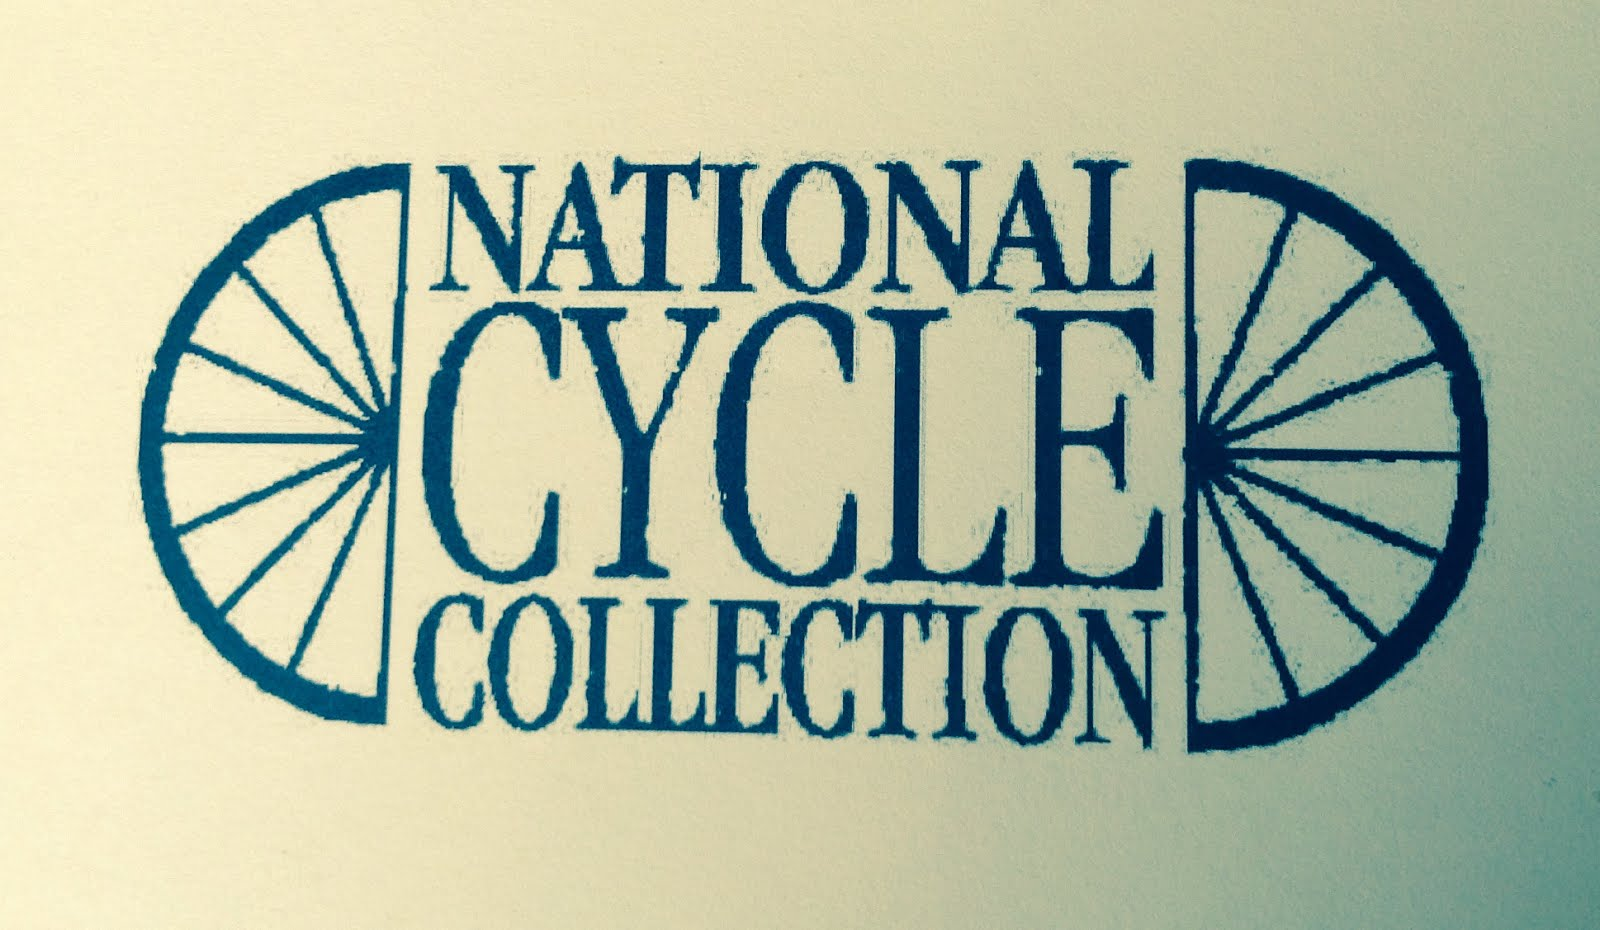 Visit National Cycle Museum Web Site